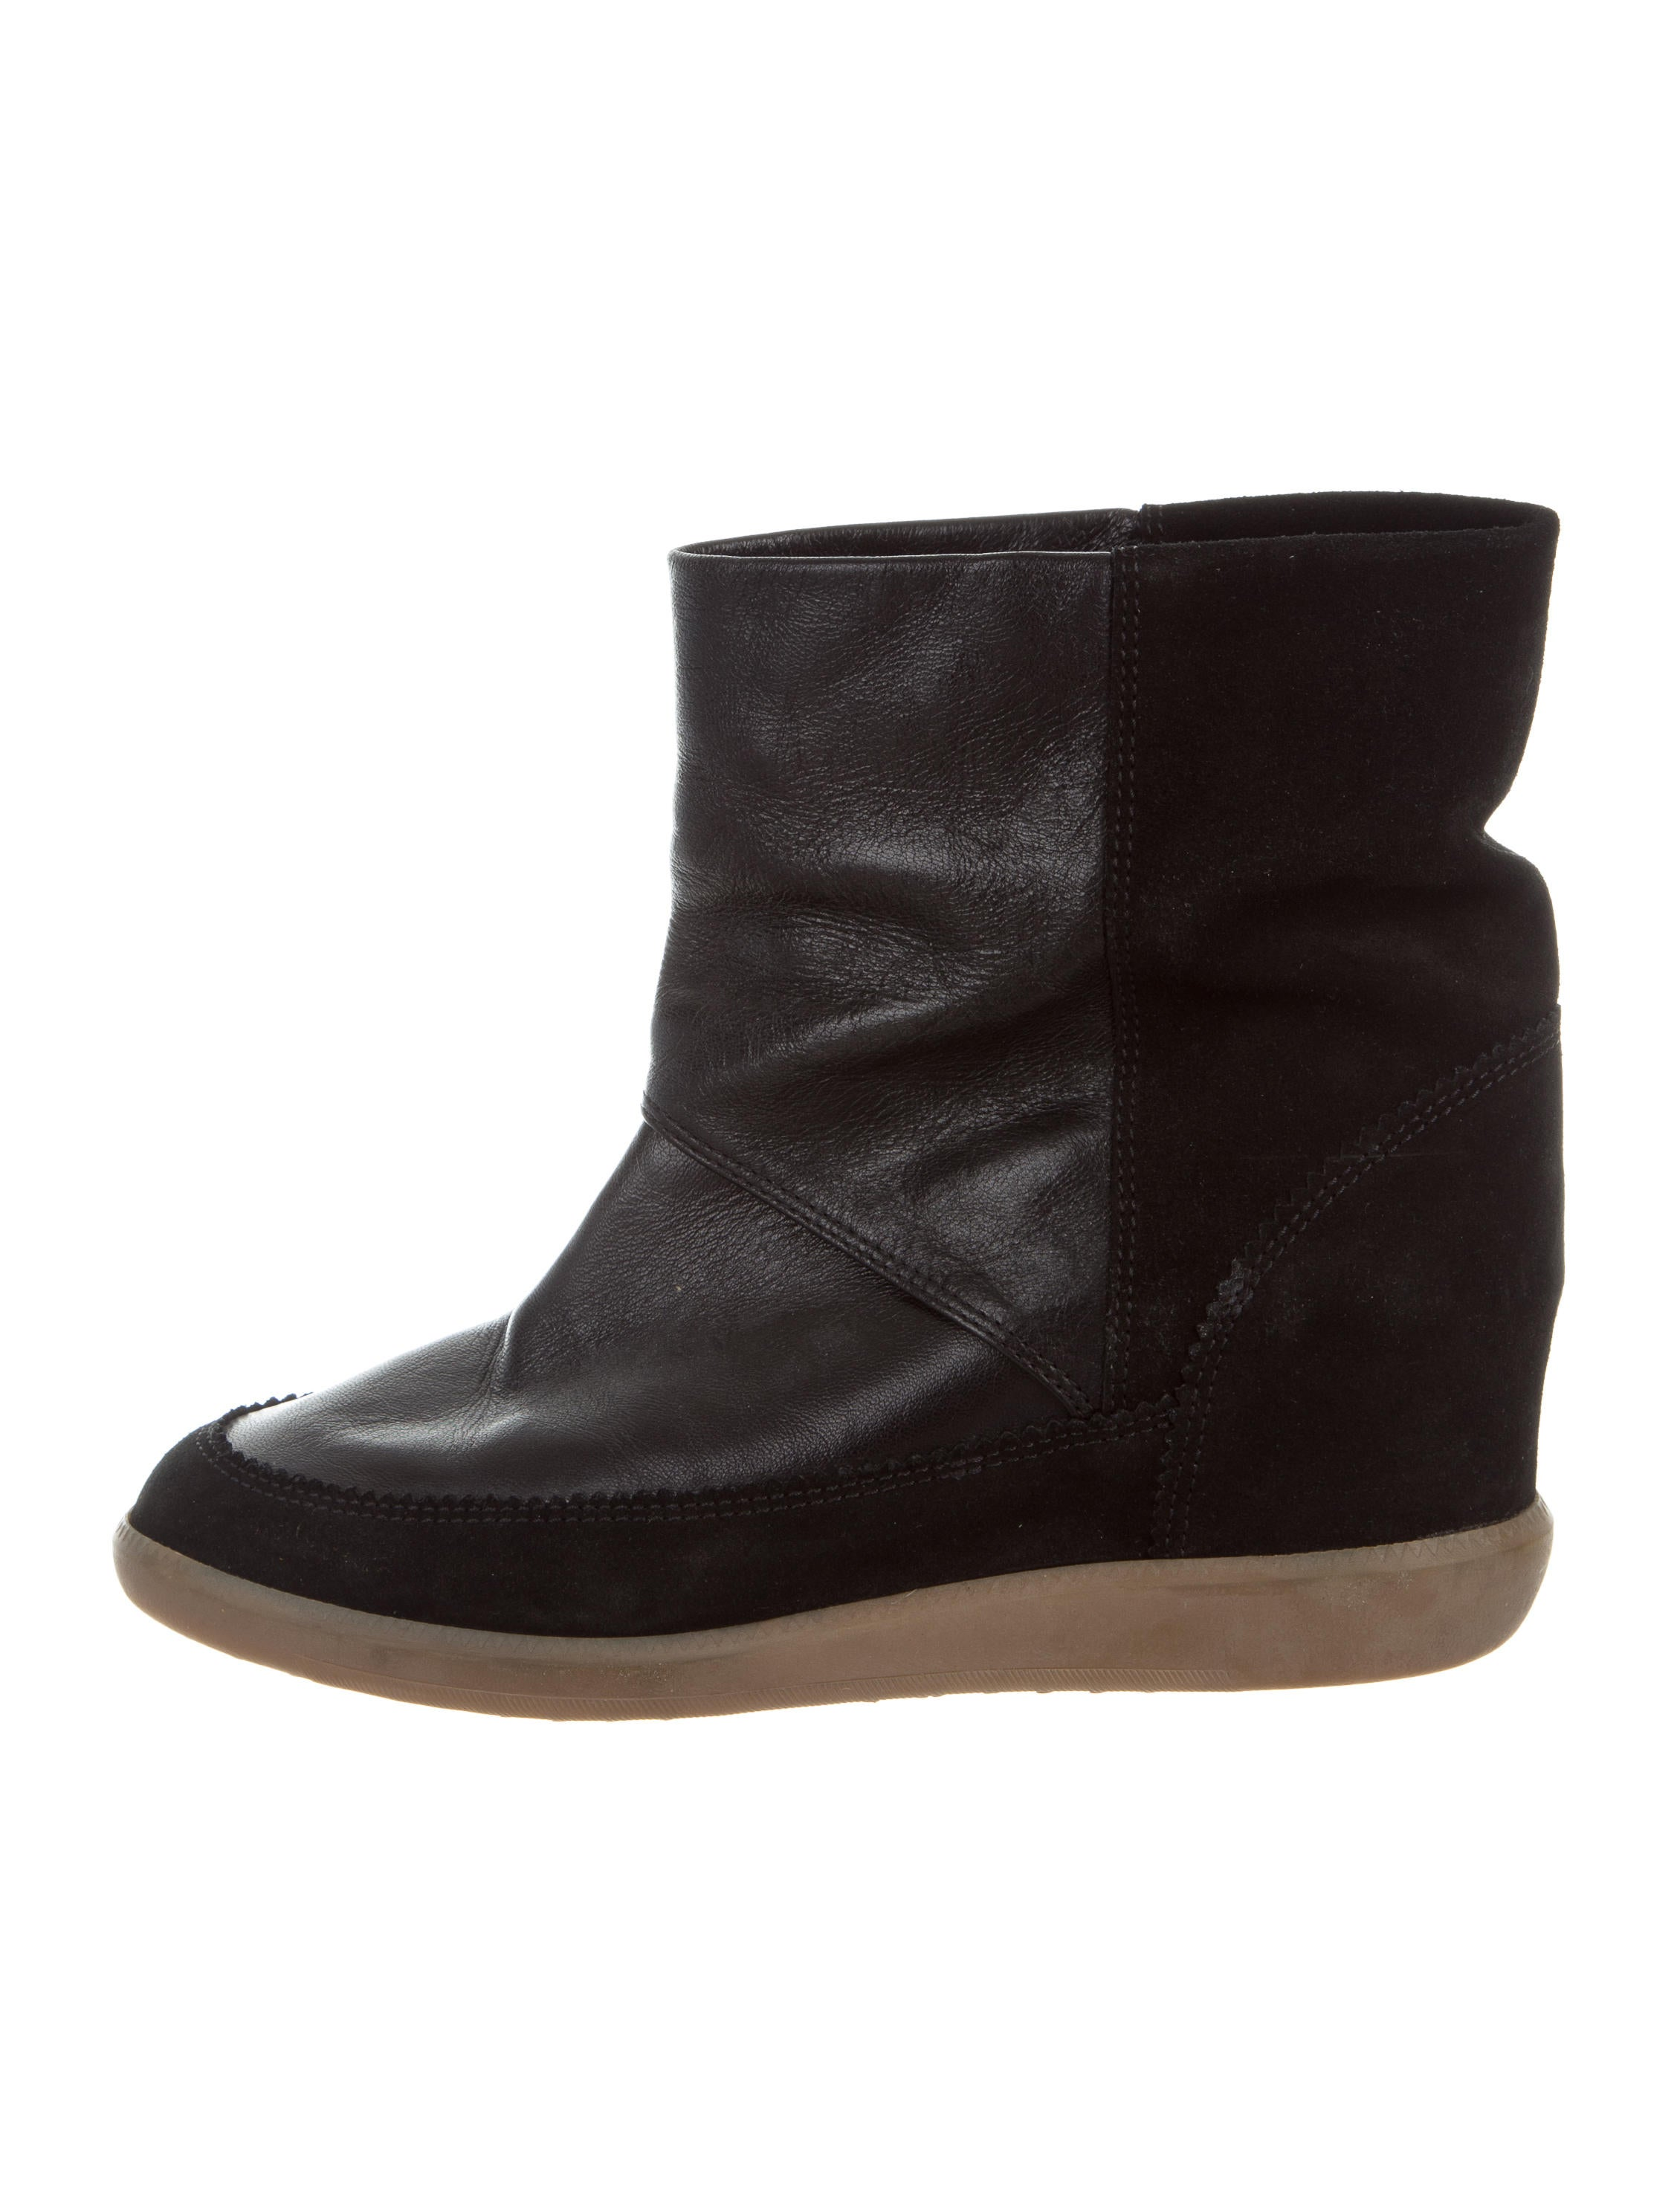 marant leather wedge ankle boots shoes isa42923